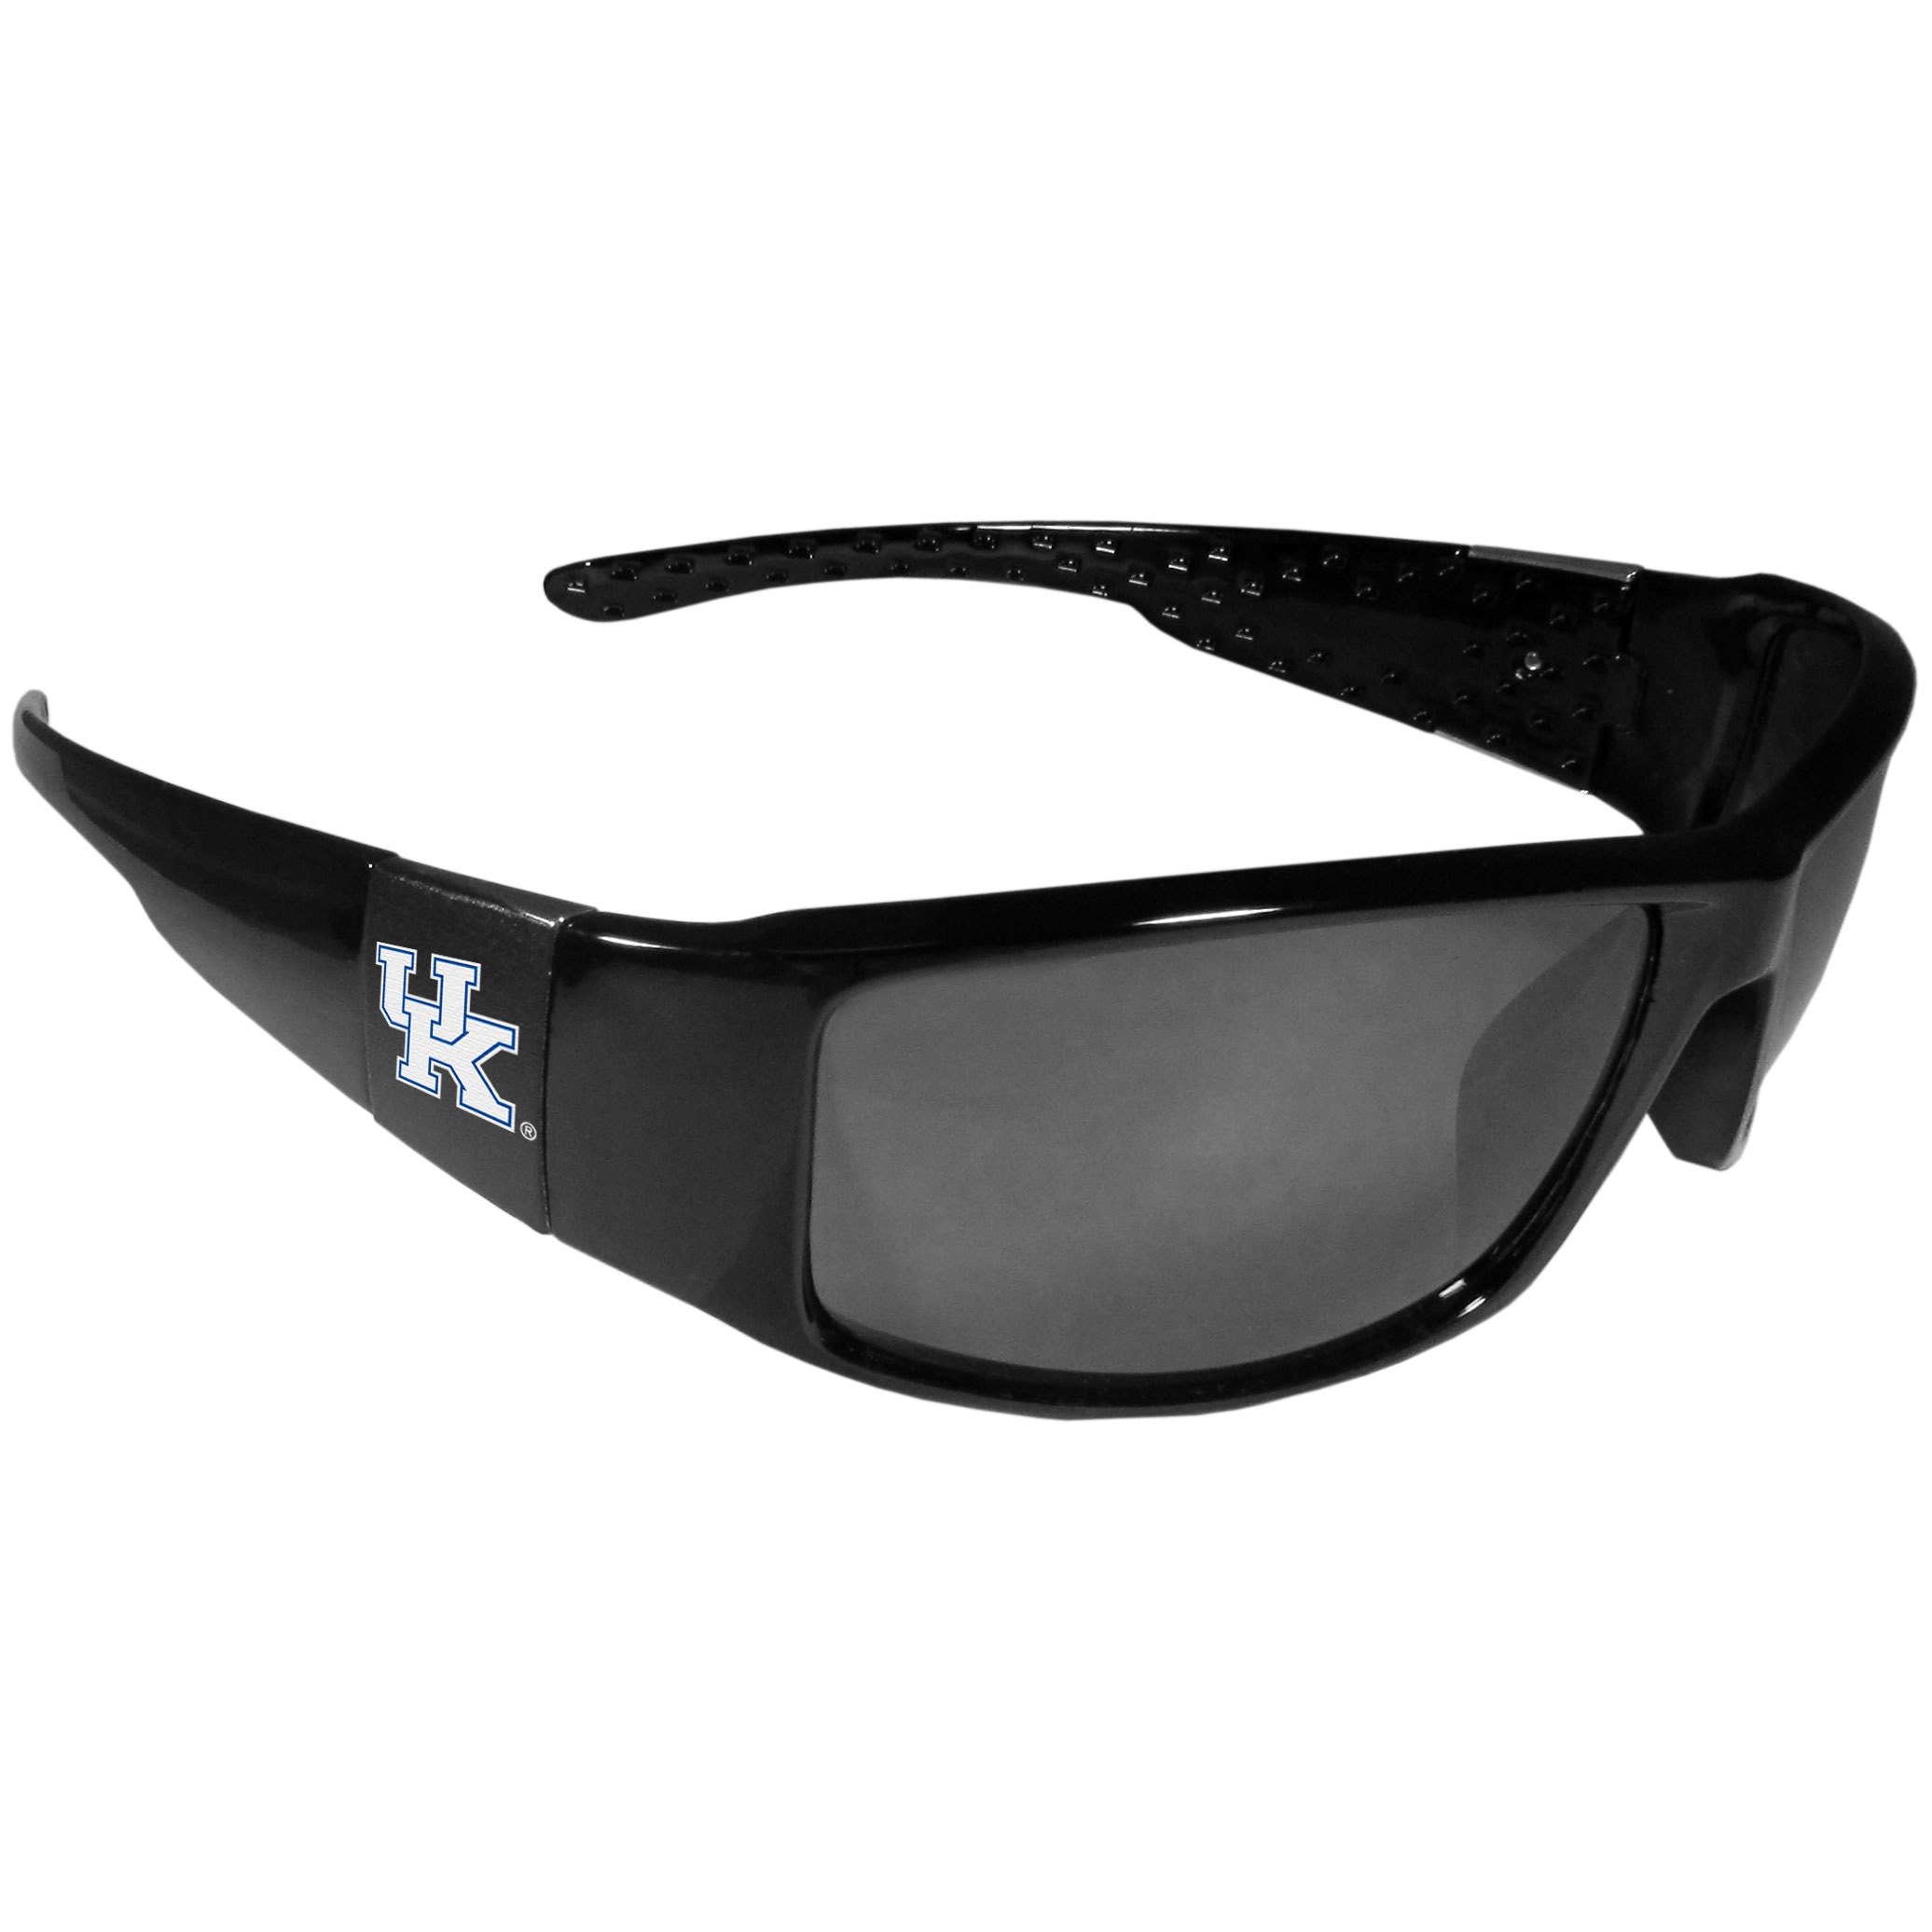 Kentucky Wildcats Black Wrap Sunglasses - These designer inspired frames have a sleek look in all black with  Kentucky Wildcats shields on each arm with a printed logo. The shades are perfect for any outdoor activity like; golfing, driving, hiking, fishing or cheering on the team at a tailgating event or at a home game day BBQ with a lens rating of 100% UVA/UVB for maximum UV protection. The high-quality frames are as durable as they are fashionable and with their classic look they are the perfect fan accessory that can be worn everyday for every occasion.